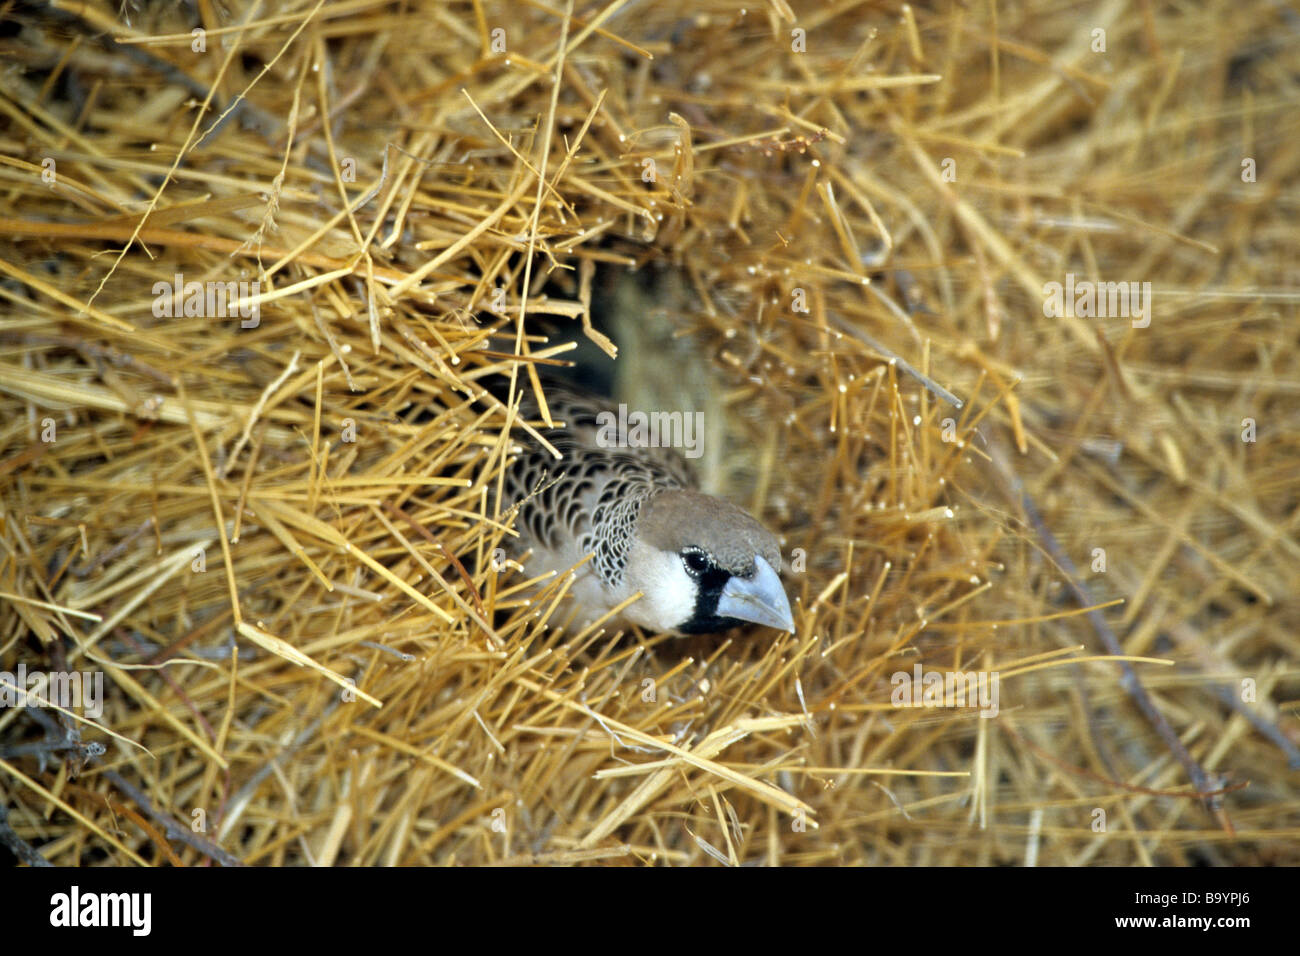 Sociable Weaver (Philetairus socius) at nest - Stock Image